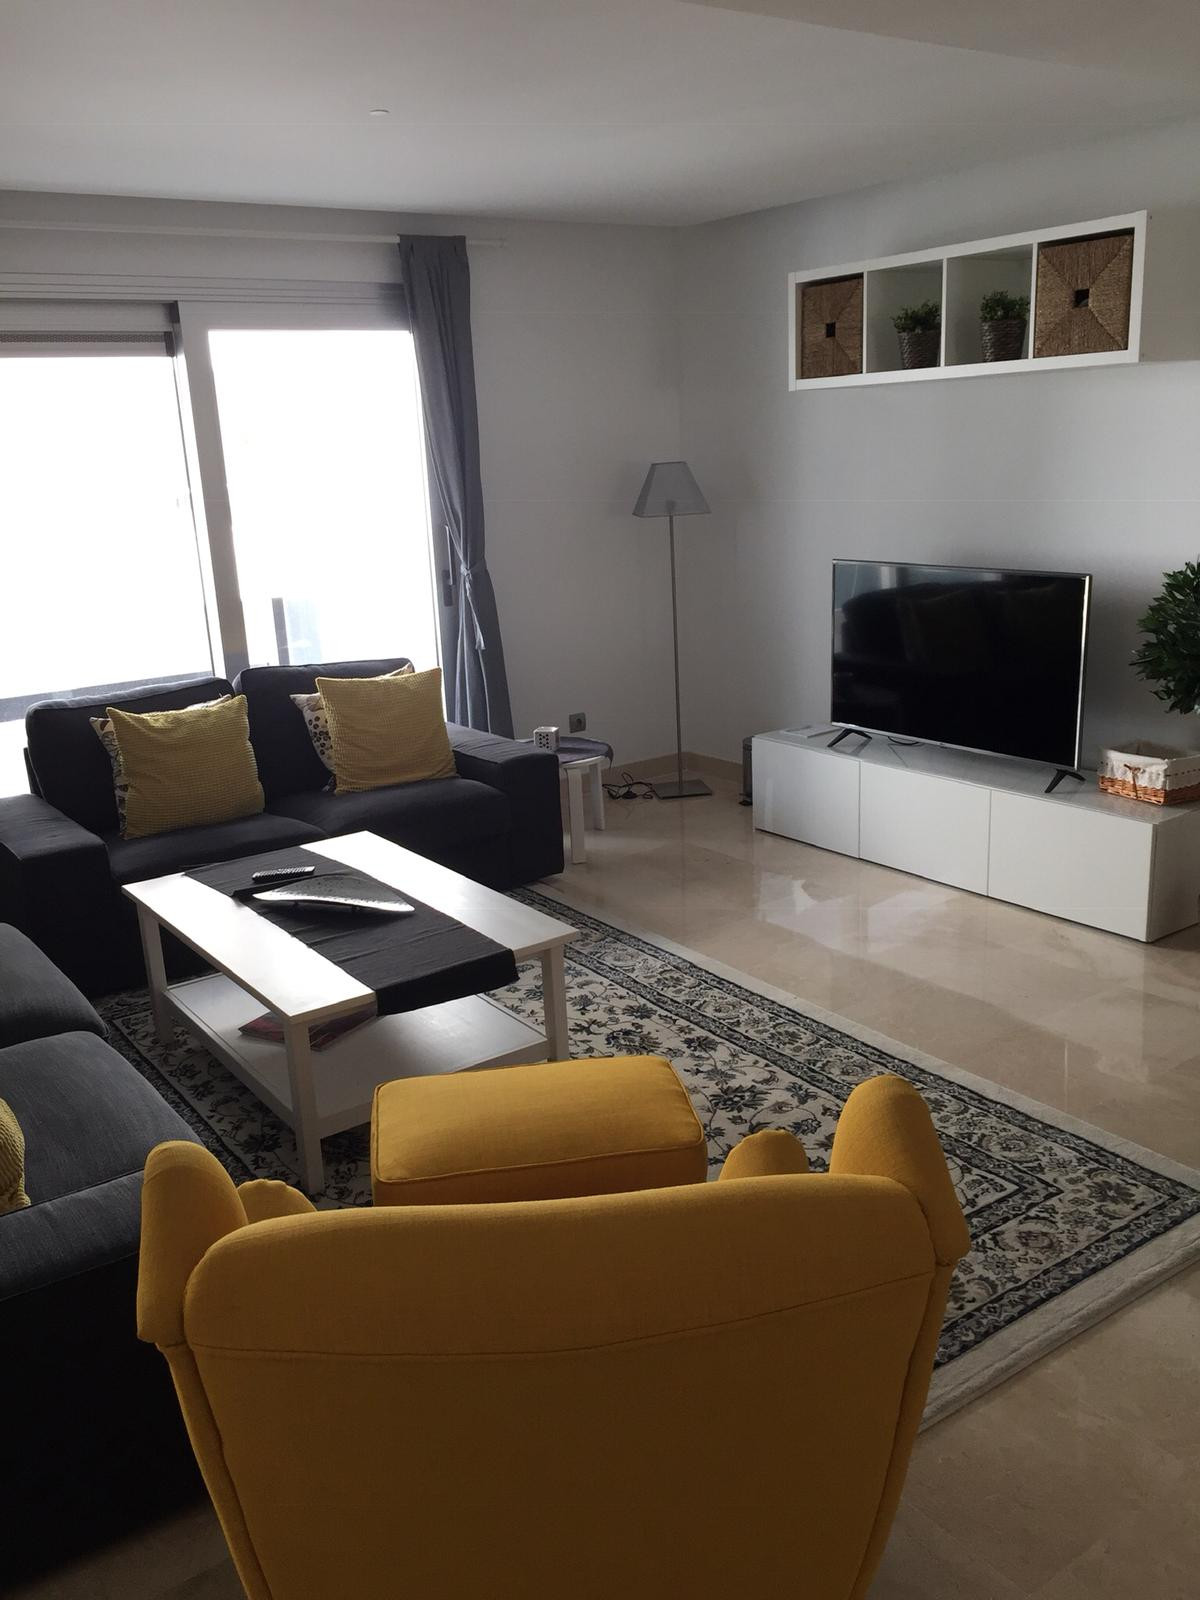 Apartment  Middle Floor 																					for rent 																			 in San Pedro de Alcántara